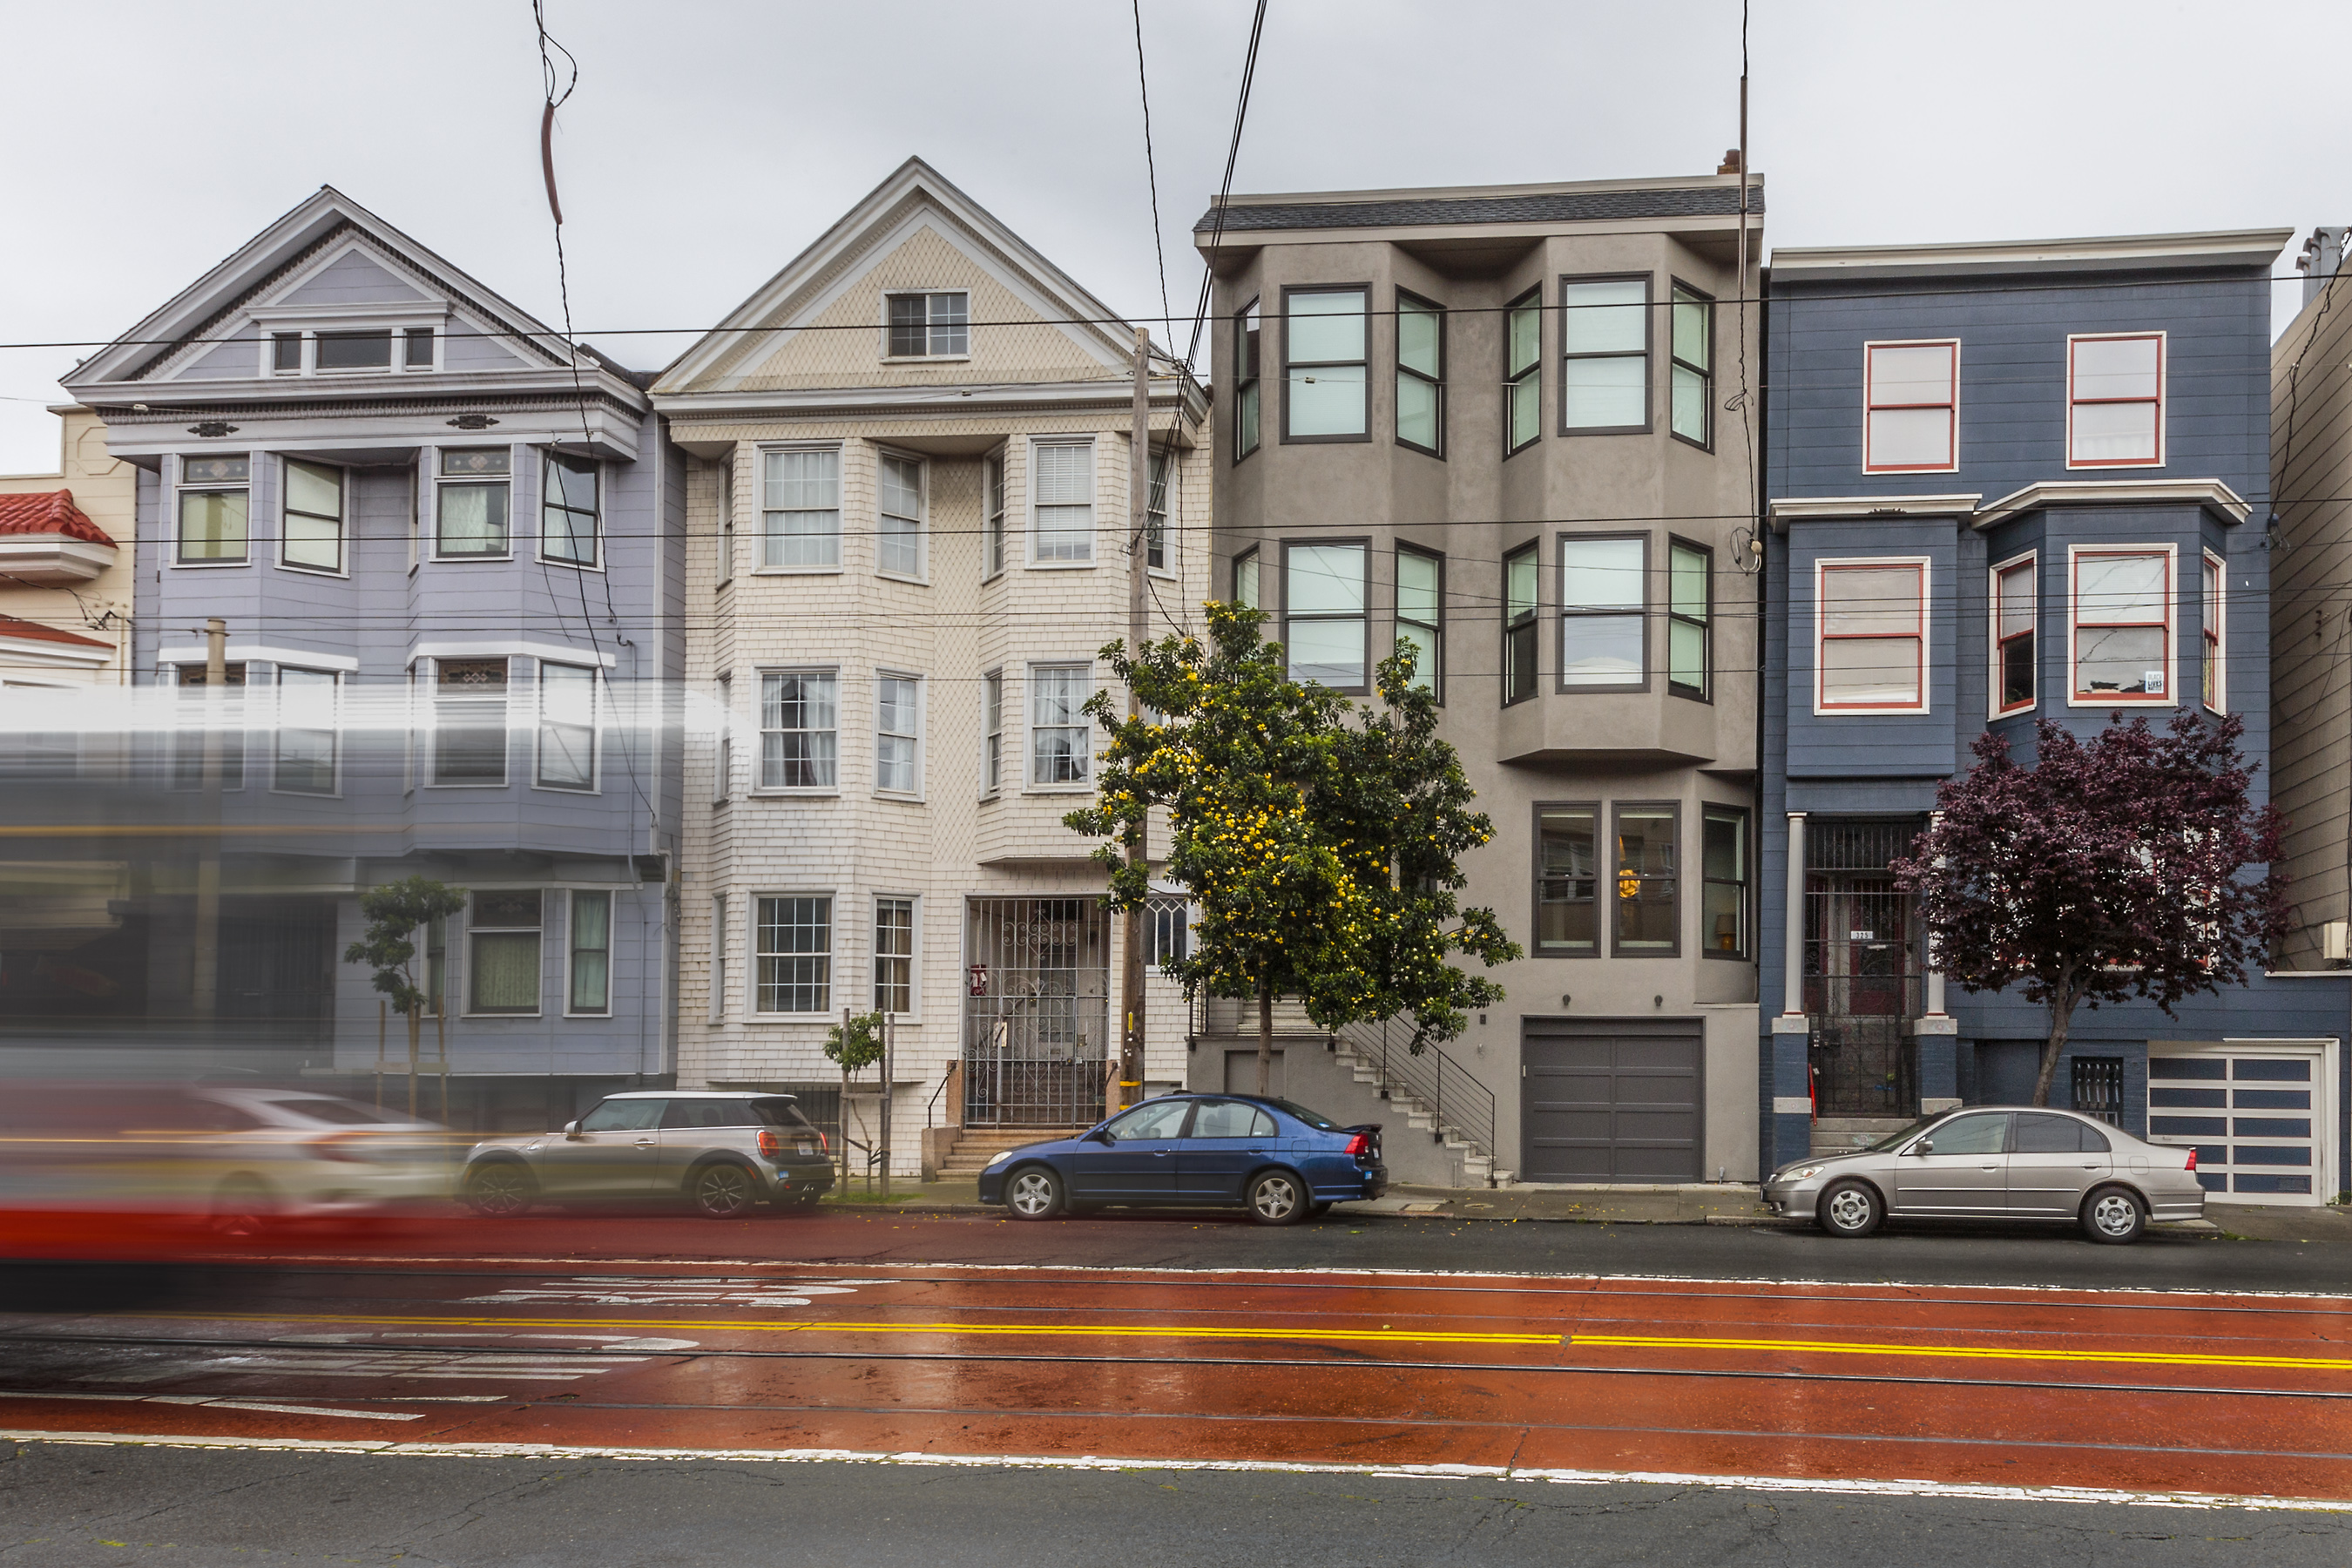 SOLD | 323 Church St. #A | Mission Dolores | $1,525,000